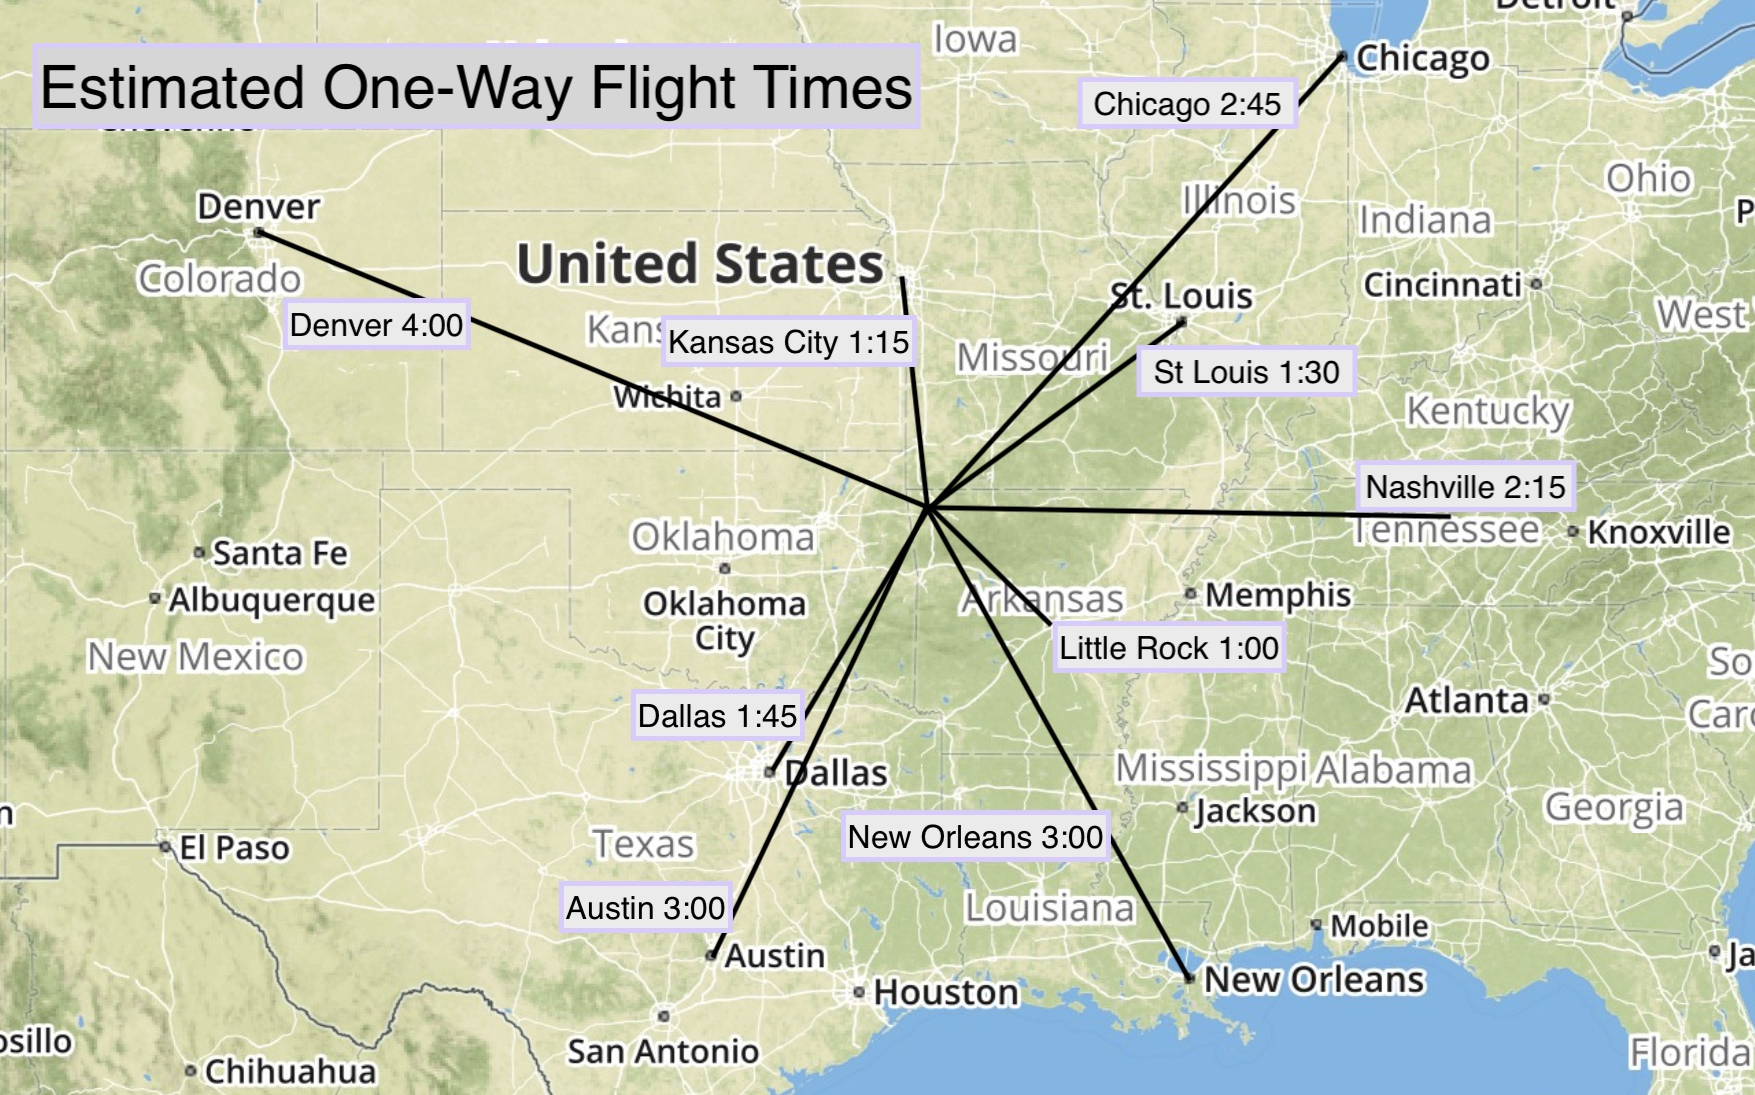 All flight times are estimated and can vary due to weather conditions and weight carried